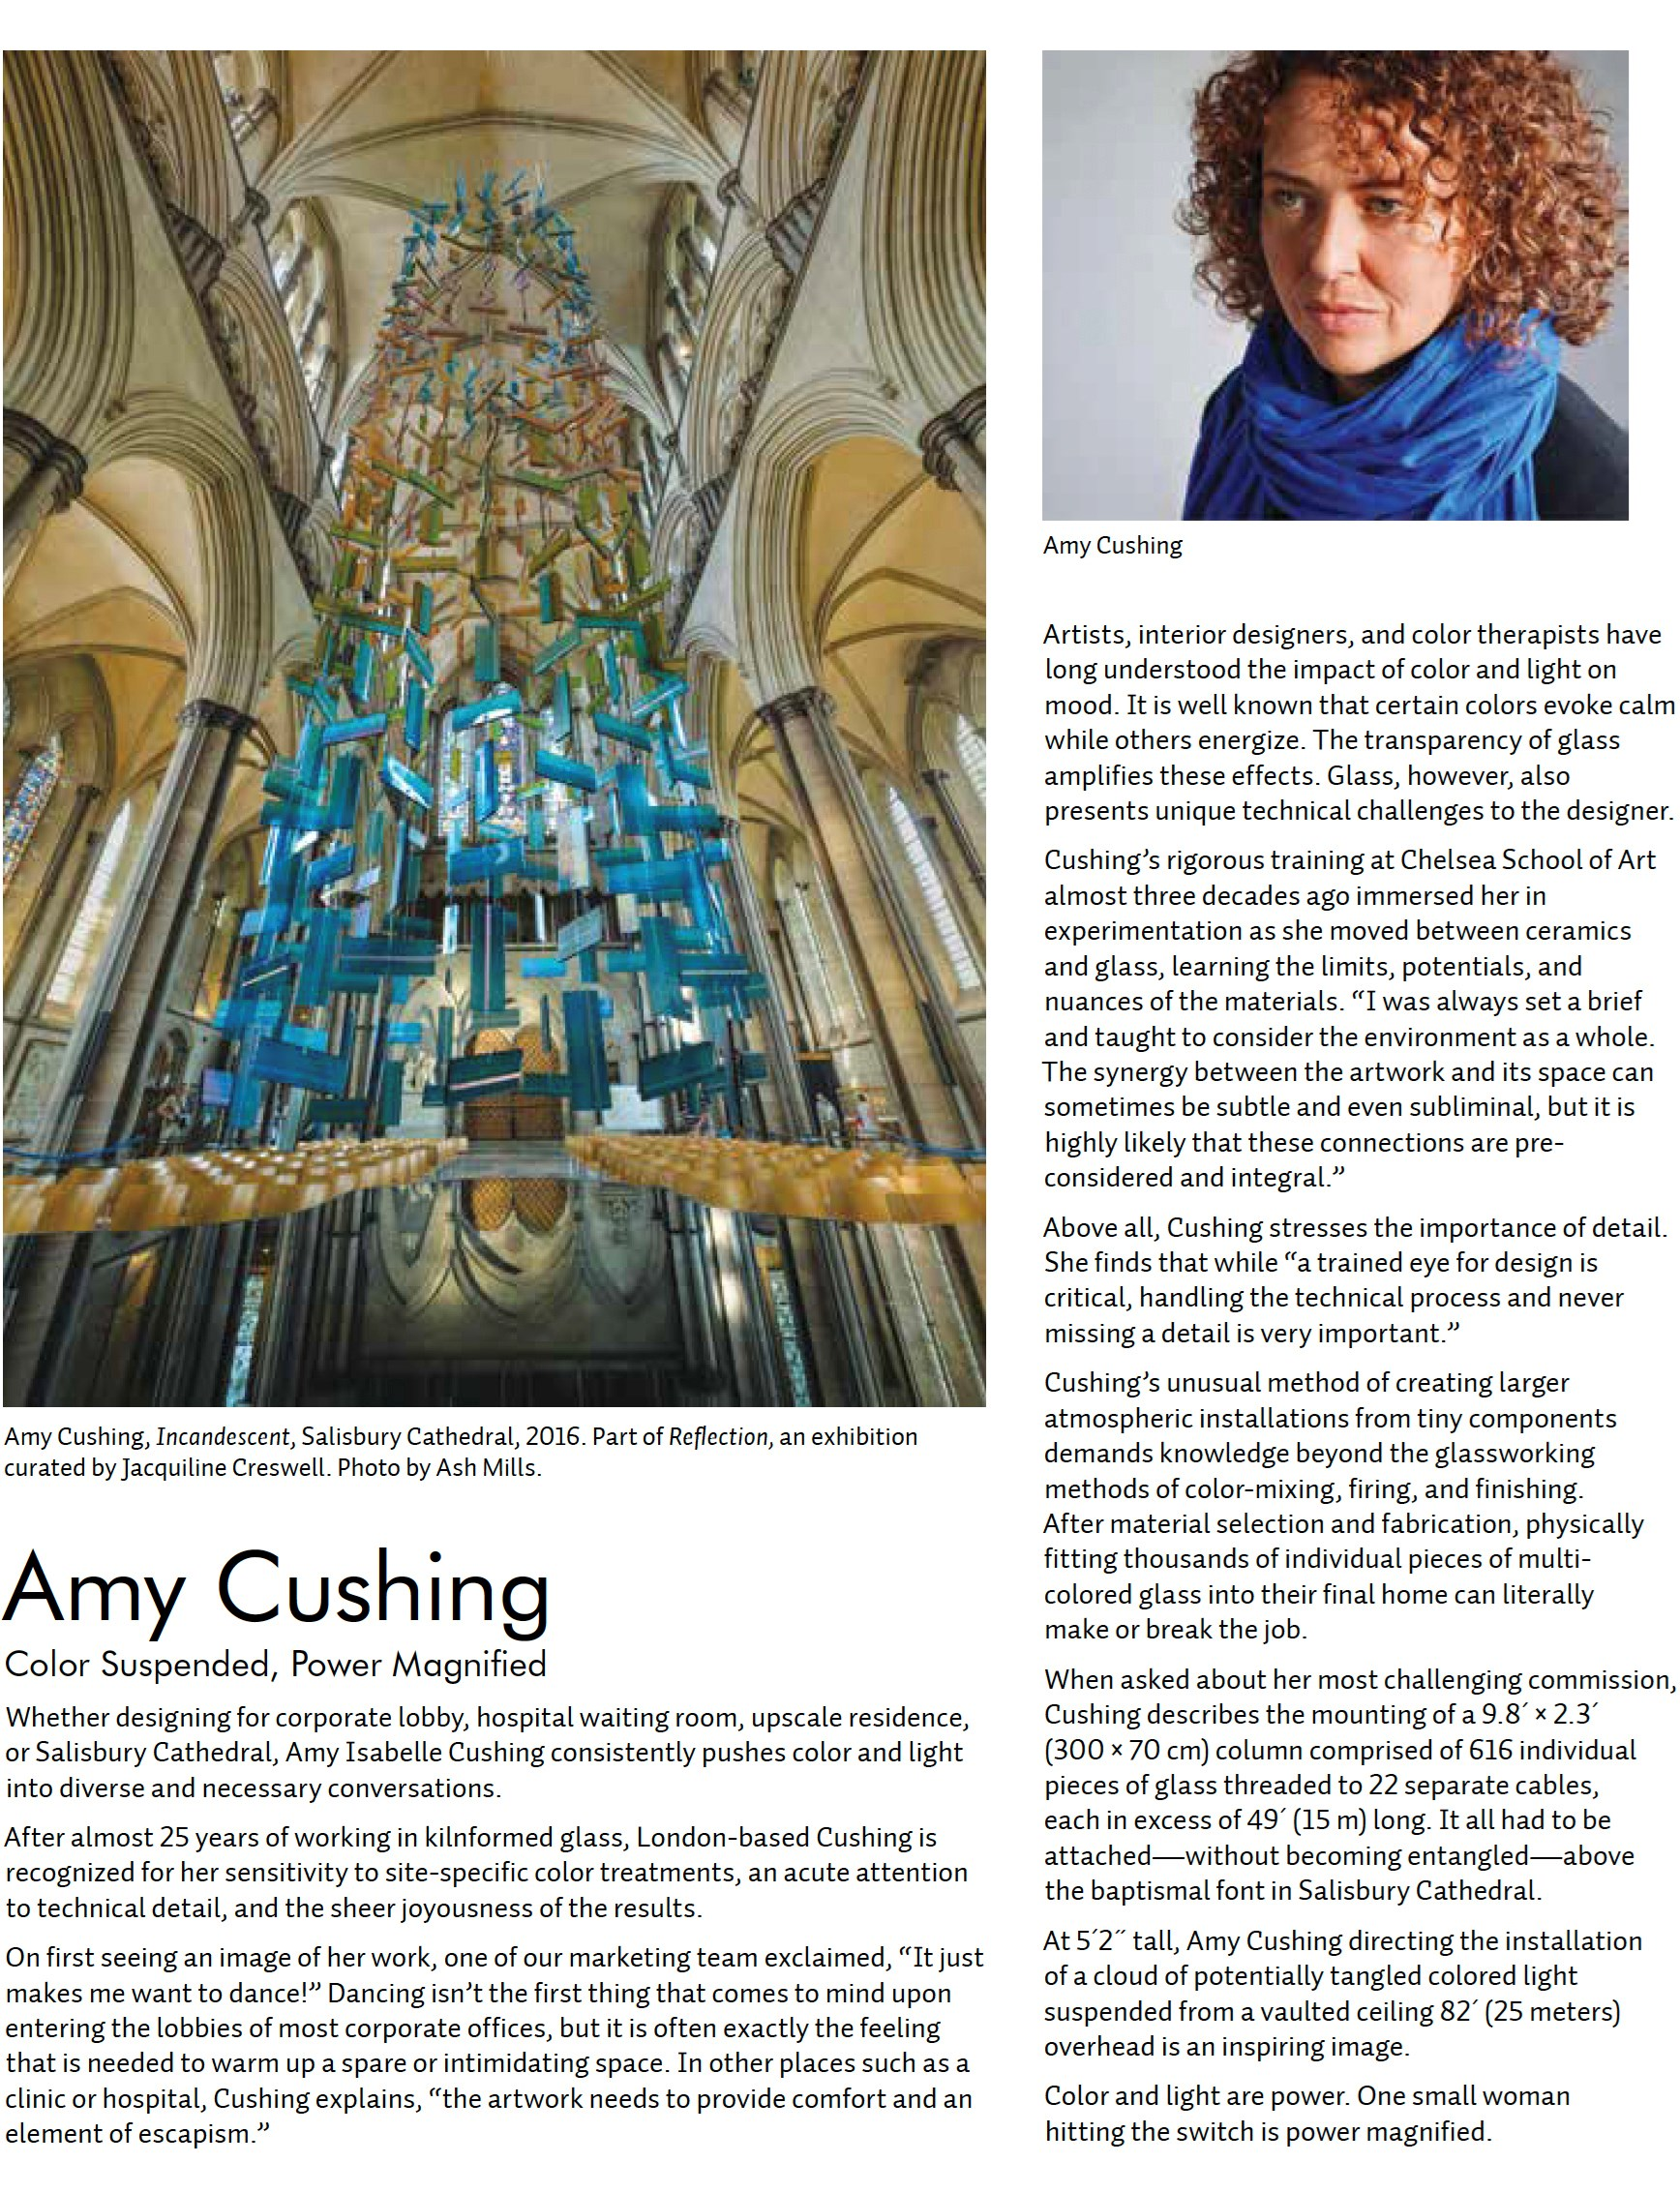 amy cushing incandescent hanging glass art installation at salisbury cathedral